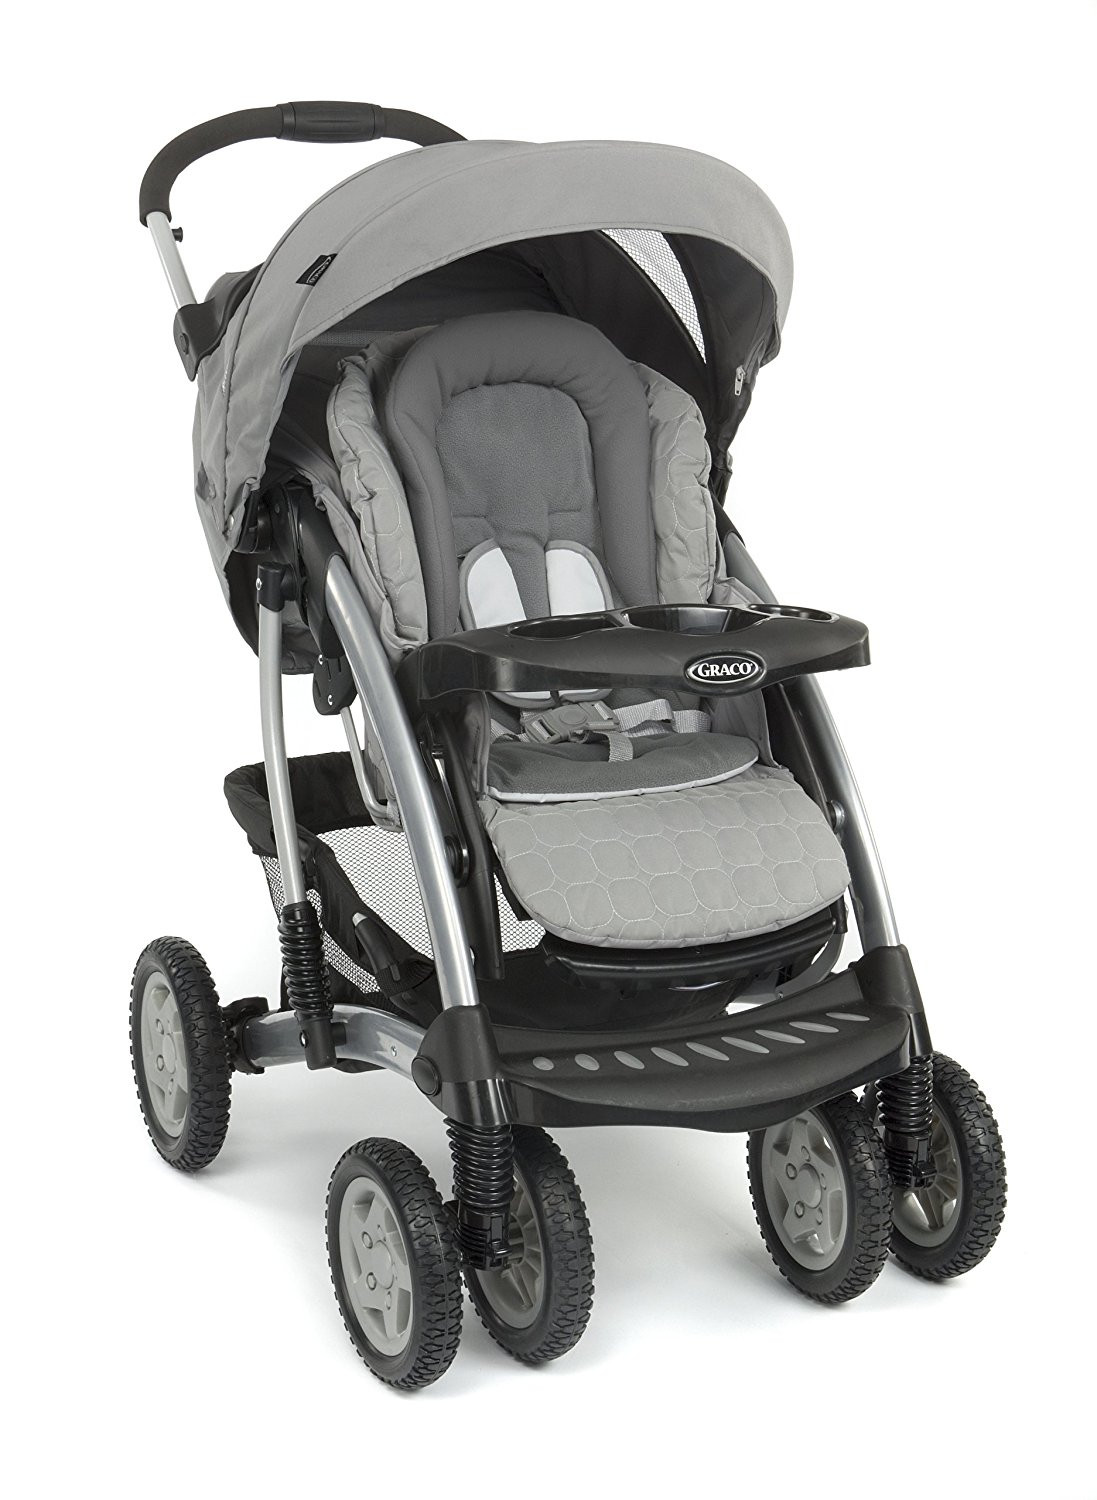 Graco Quattro Tour Travel System Reviews